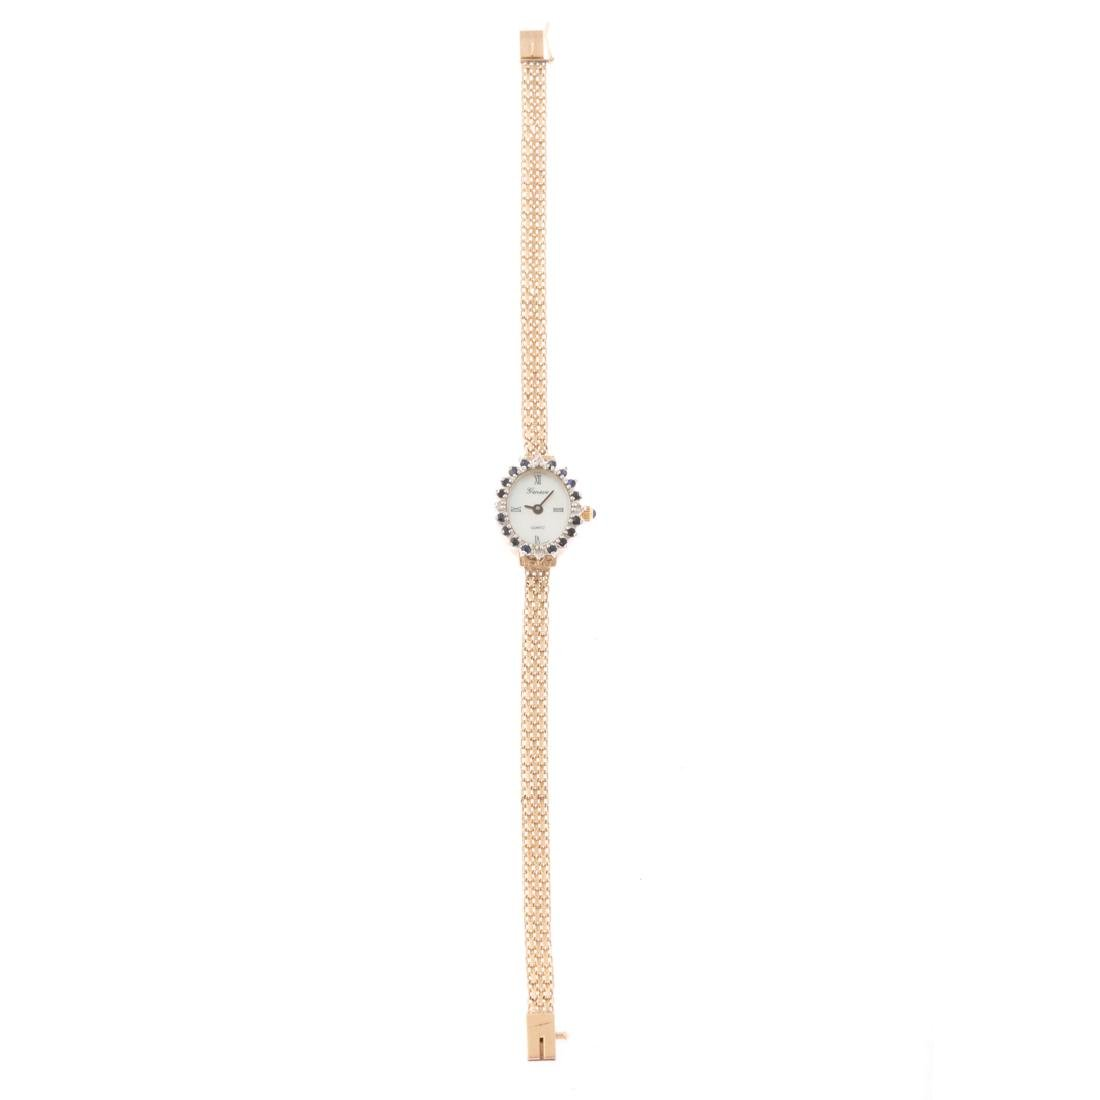 A Lady's 14K Geneve Dress Watch with Sapphires - 2